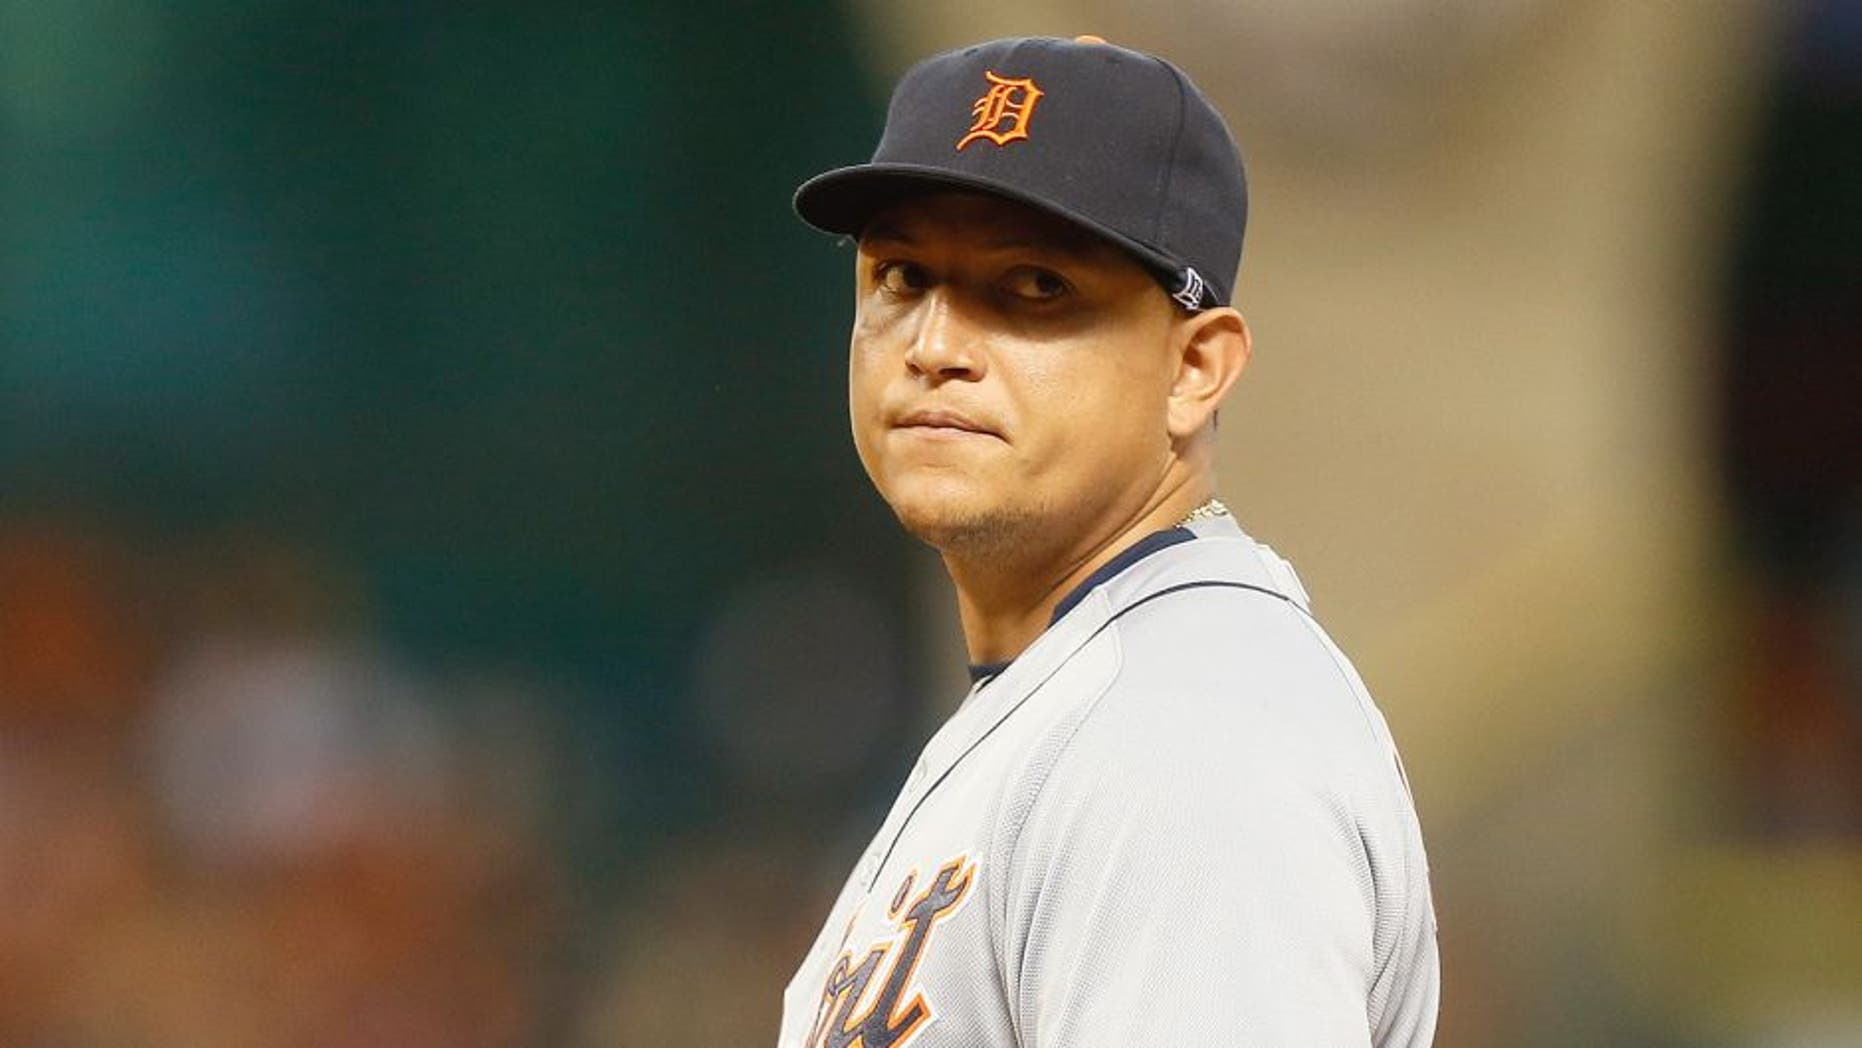 HOUSTON, TX - AUGUST 14: Miguel Cabrera #24 of the Detroit Tigers looks on during a game against the Houston Astros at Minute Maid Park on August 14, 2015 in Houston, Texas. (Photo by Bob Levey/Getty Images)